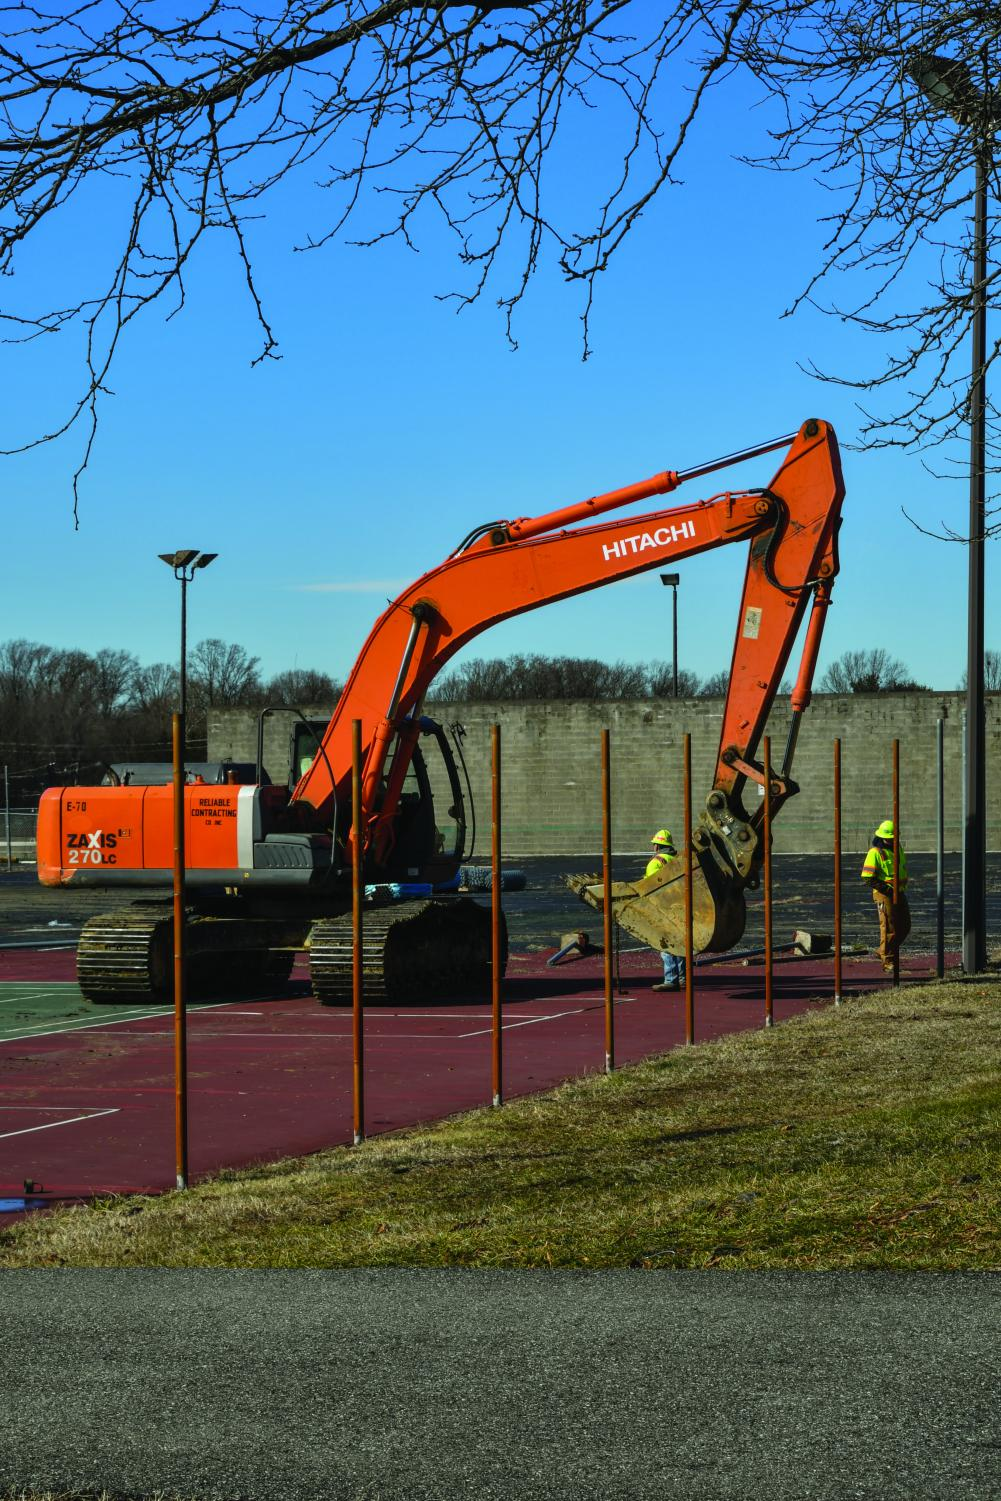 Students say campus construction has made parking inconvenient.